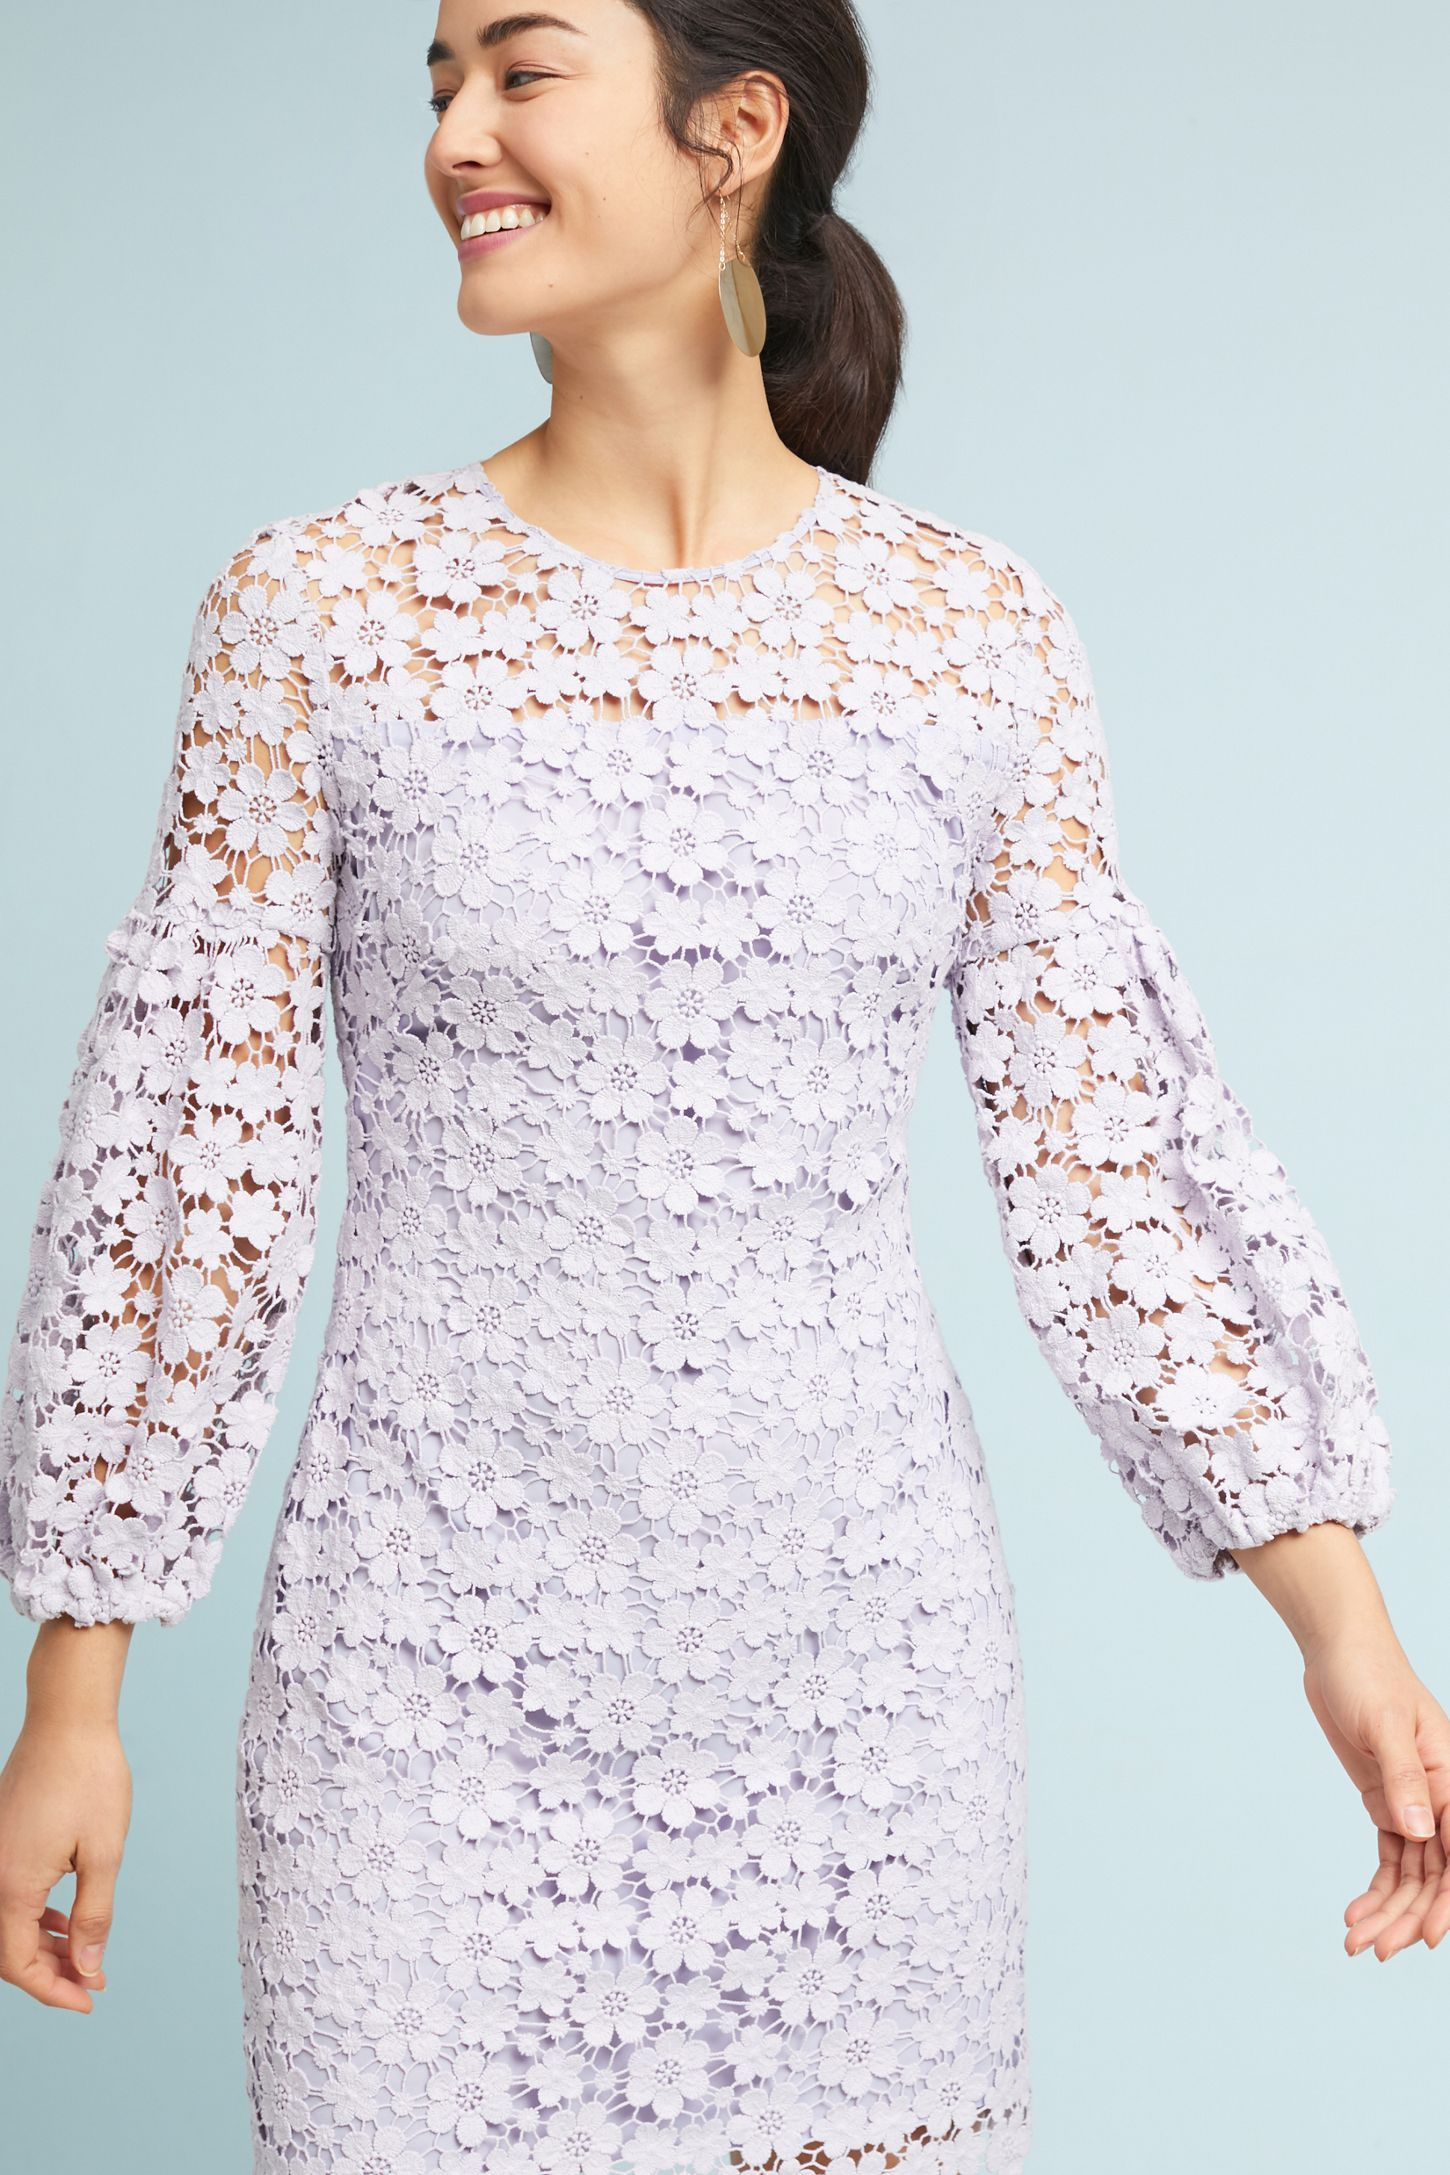 Shoshanna Vina Lace Dress Spring Is In The Air Lace